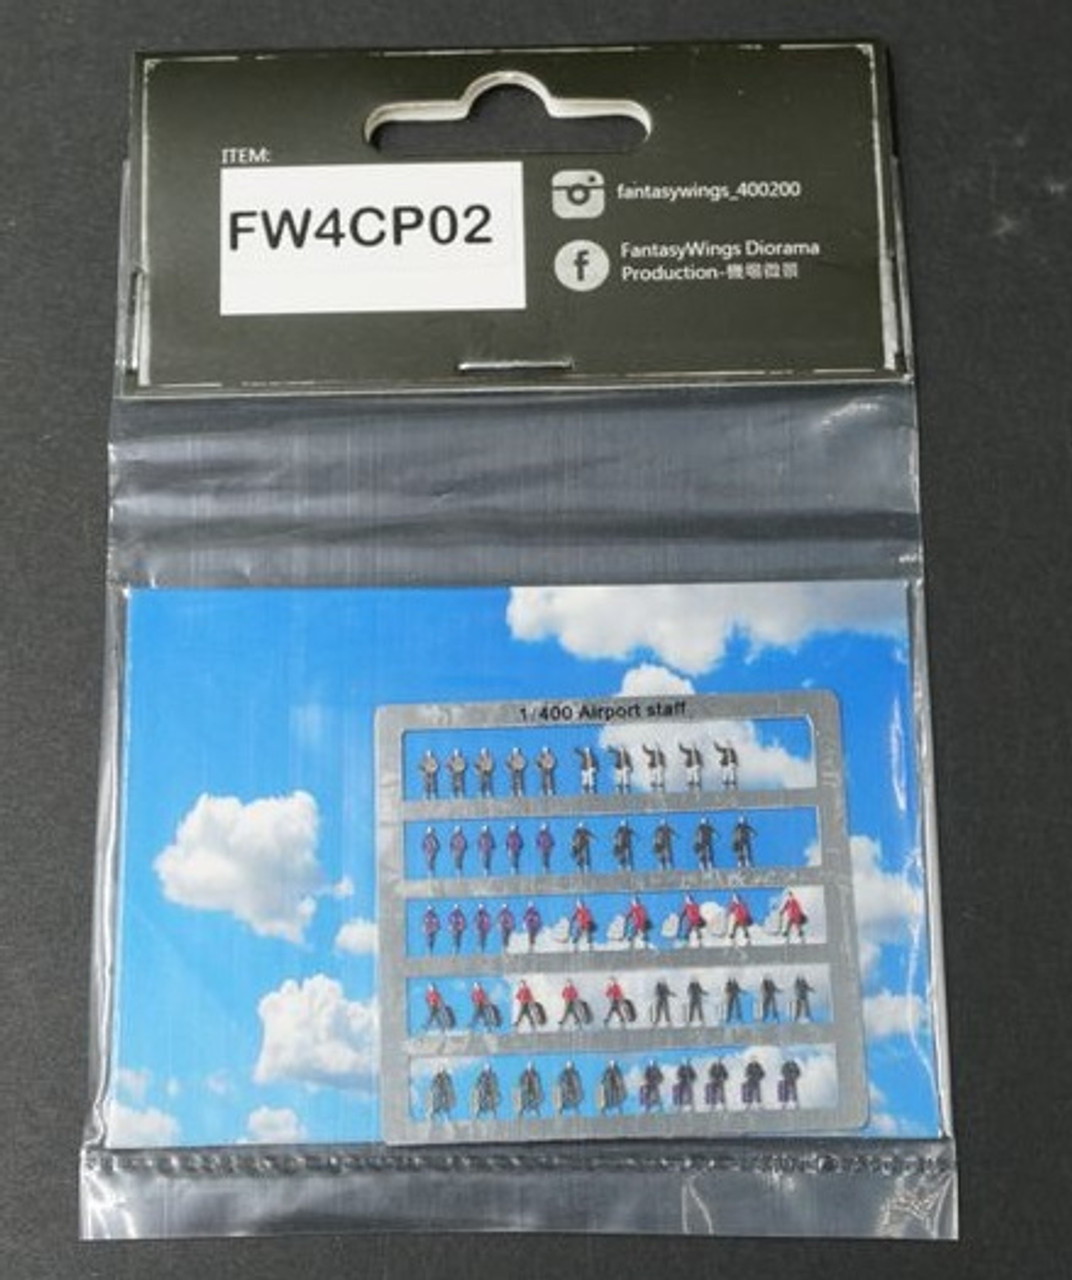 FantasyWings 1/400 Scale Airport Staff